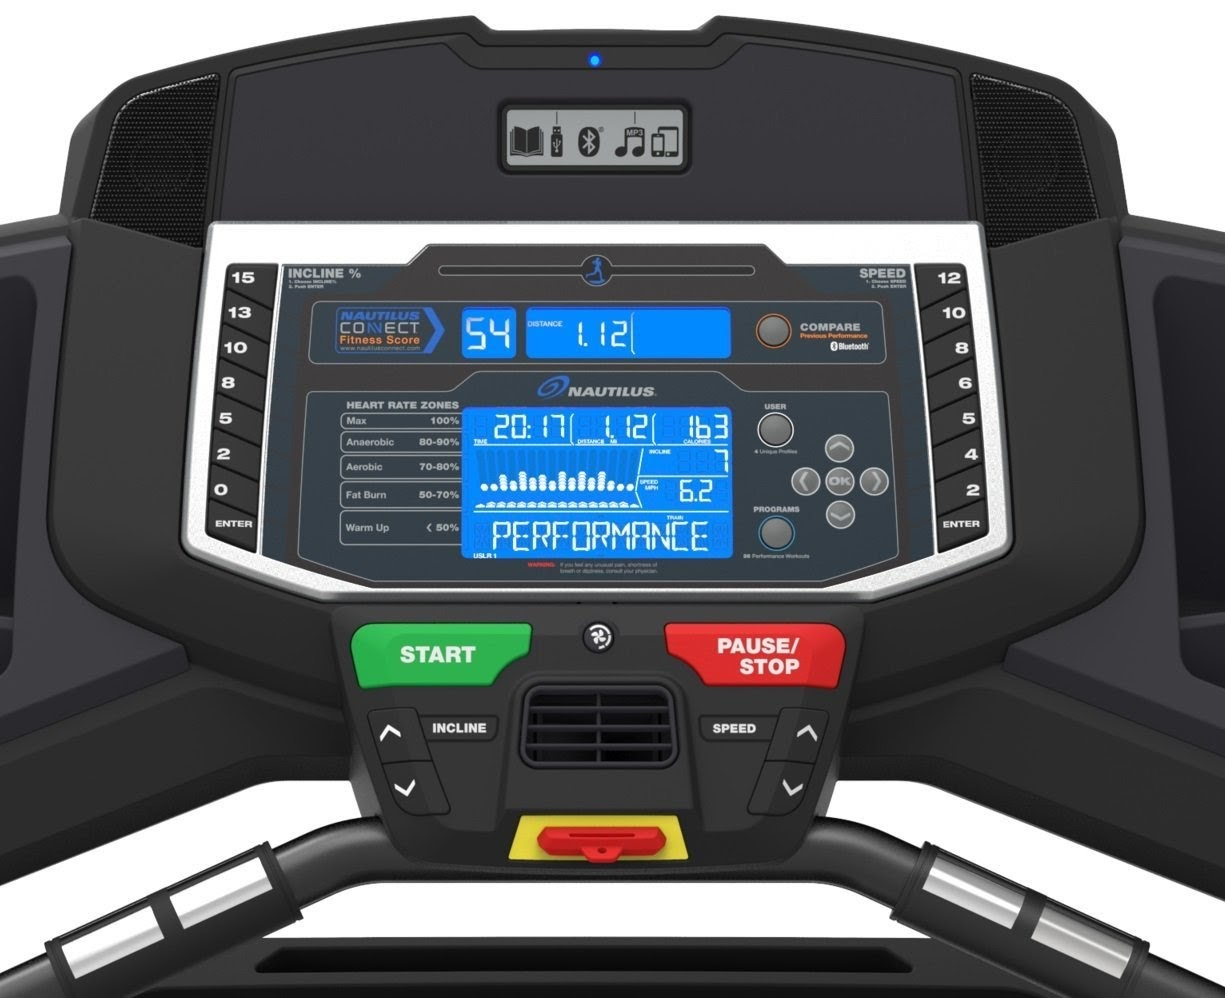 nautilus t618 console and functions